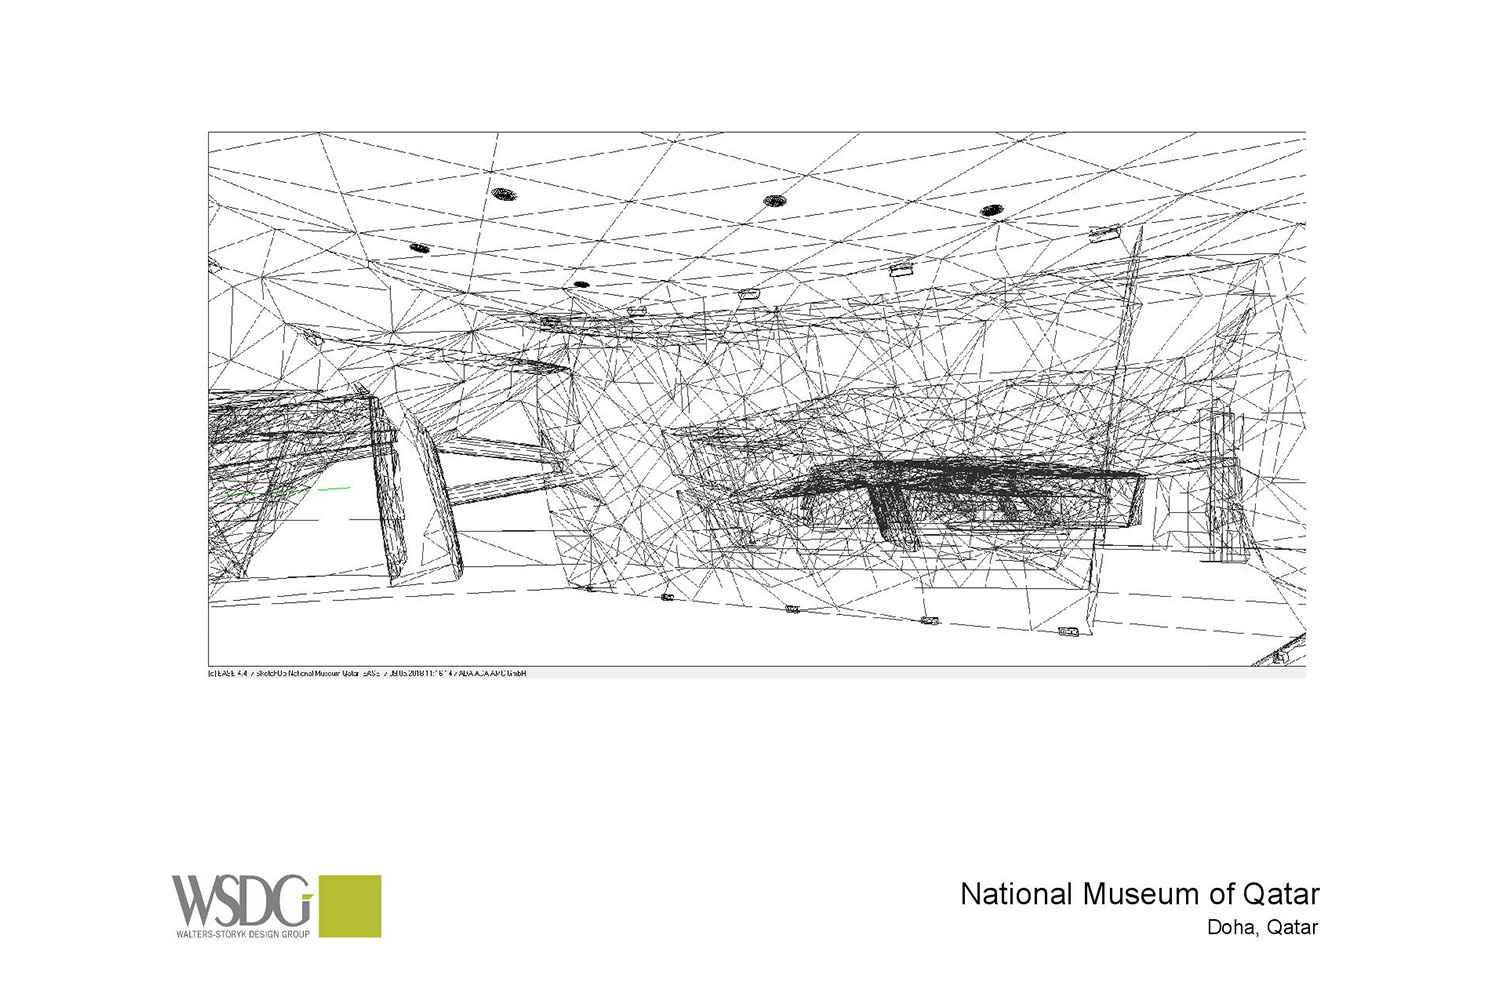 The National Museum of Qatar. WSDG was contracted to create a 3-D acoustic model of the space and make recommendations regarding appropriate speaker usage and placement. Acoustic 3D Model Drawing 4.